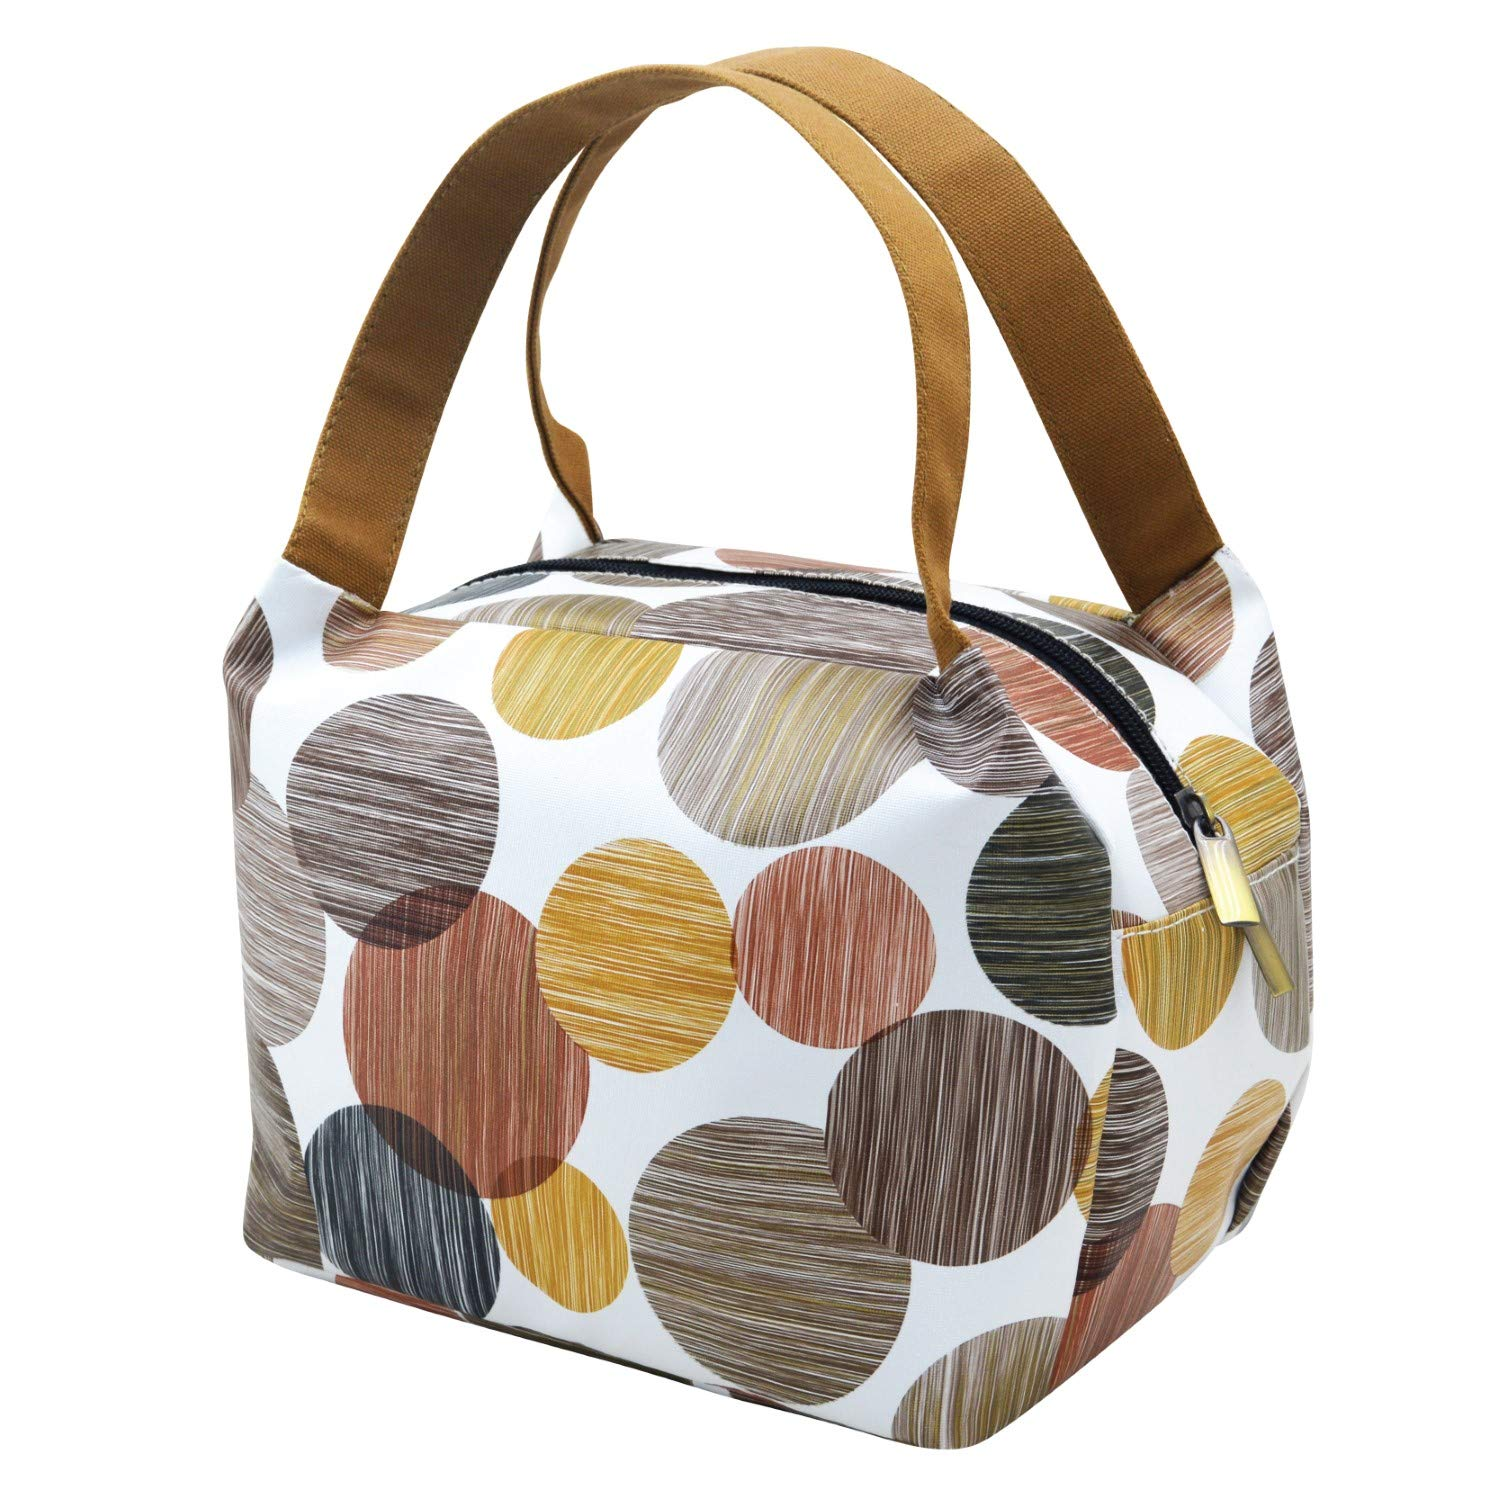 9eae48e70fc3 Fatmug Thermal Insulated Lunch Bag for Office - Cute Small Picnic Handbag  for Women and Girls